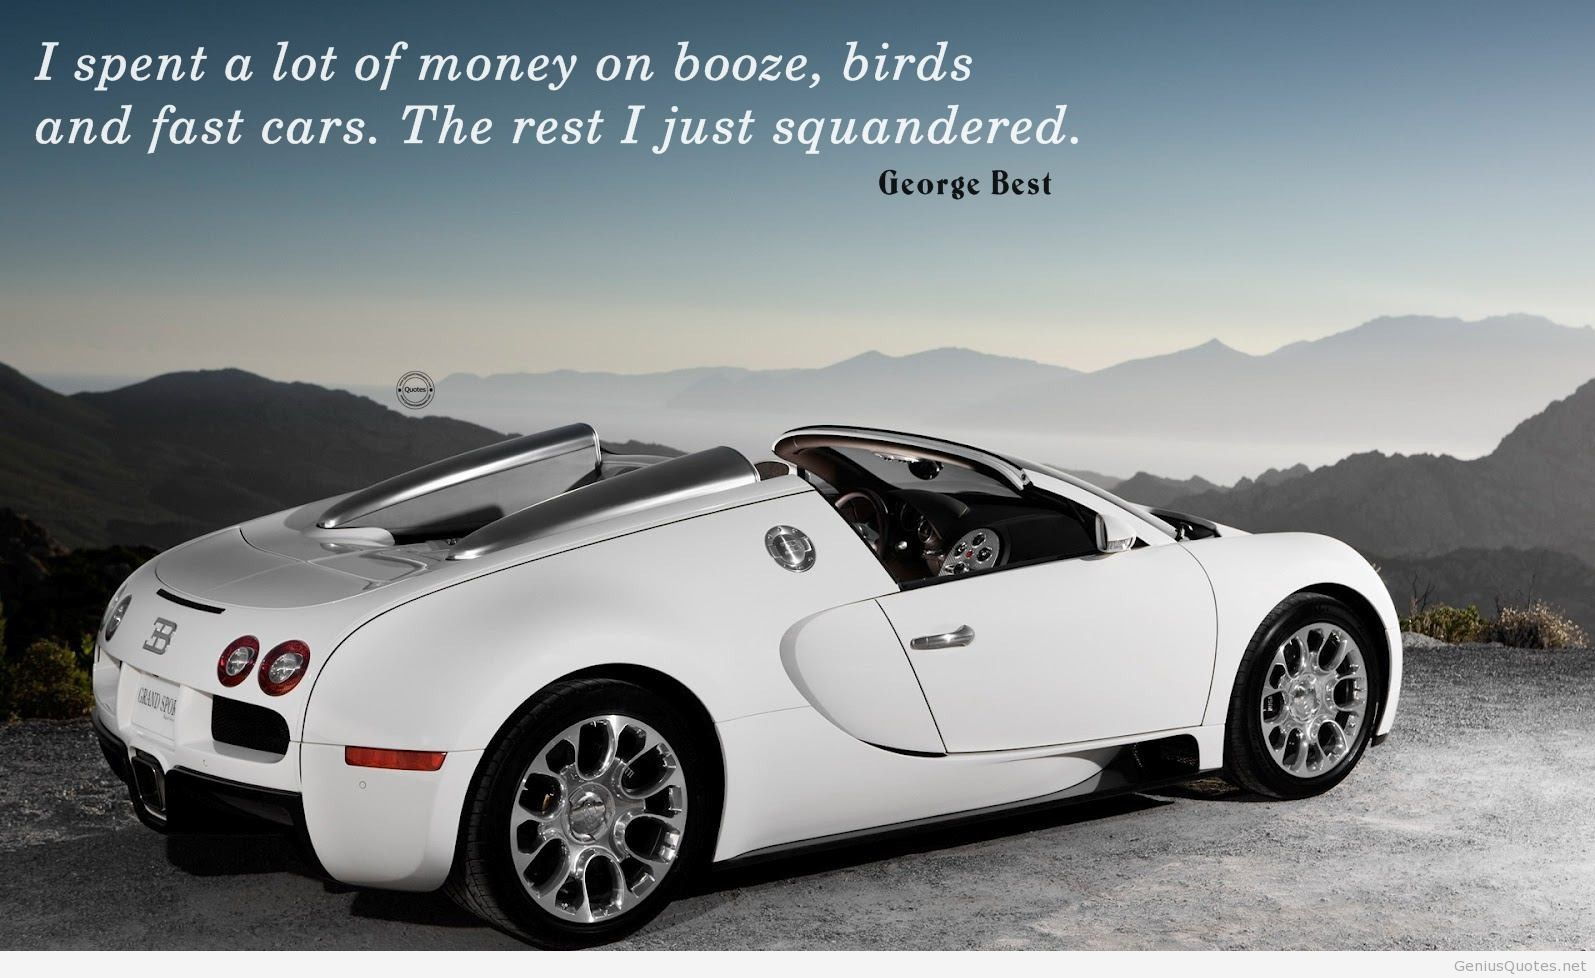 Motivational Quotes On Car Google Search Motivational Quotes